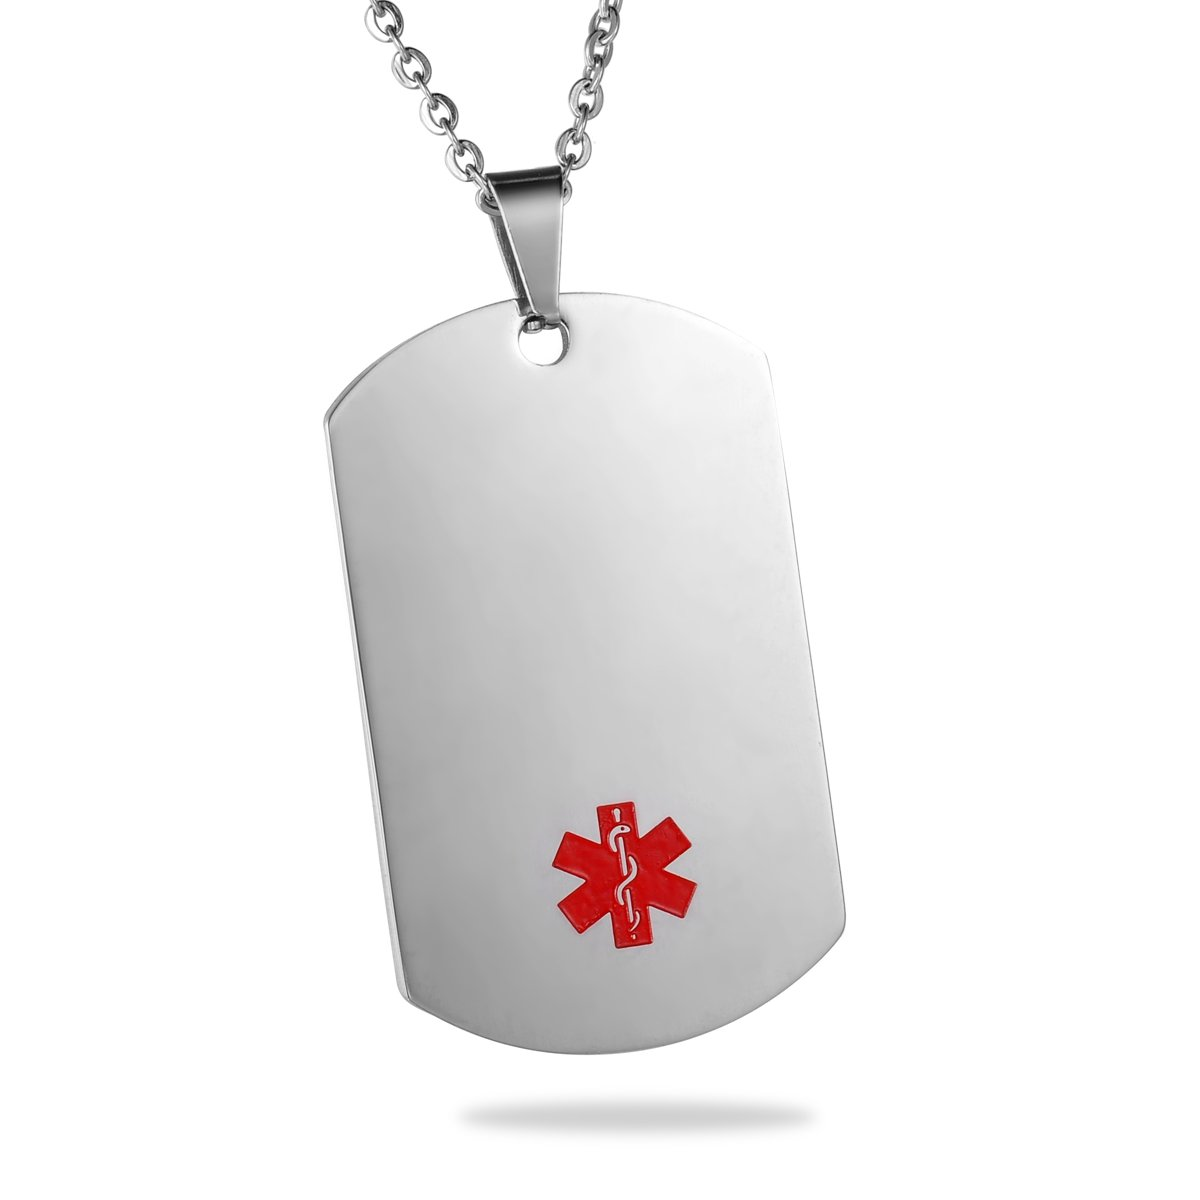 HooAMI Stainless Steel Medical Alert ID Tag Pendant Necklace 22'' Chain - Free Engraving